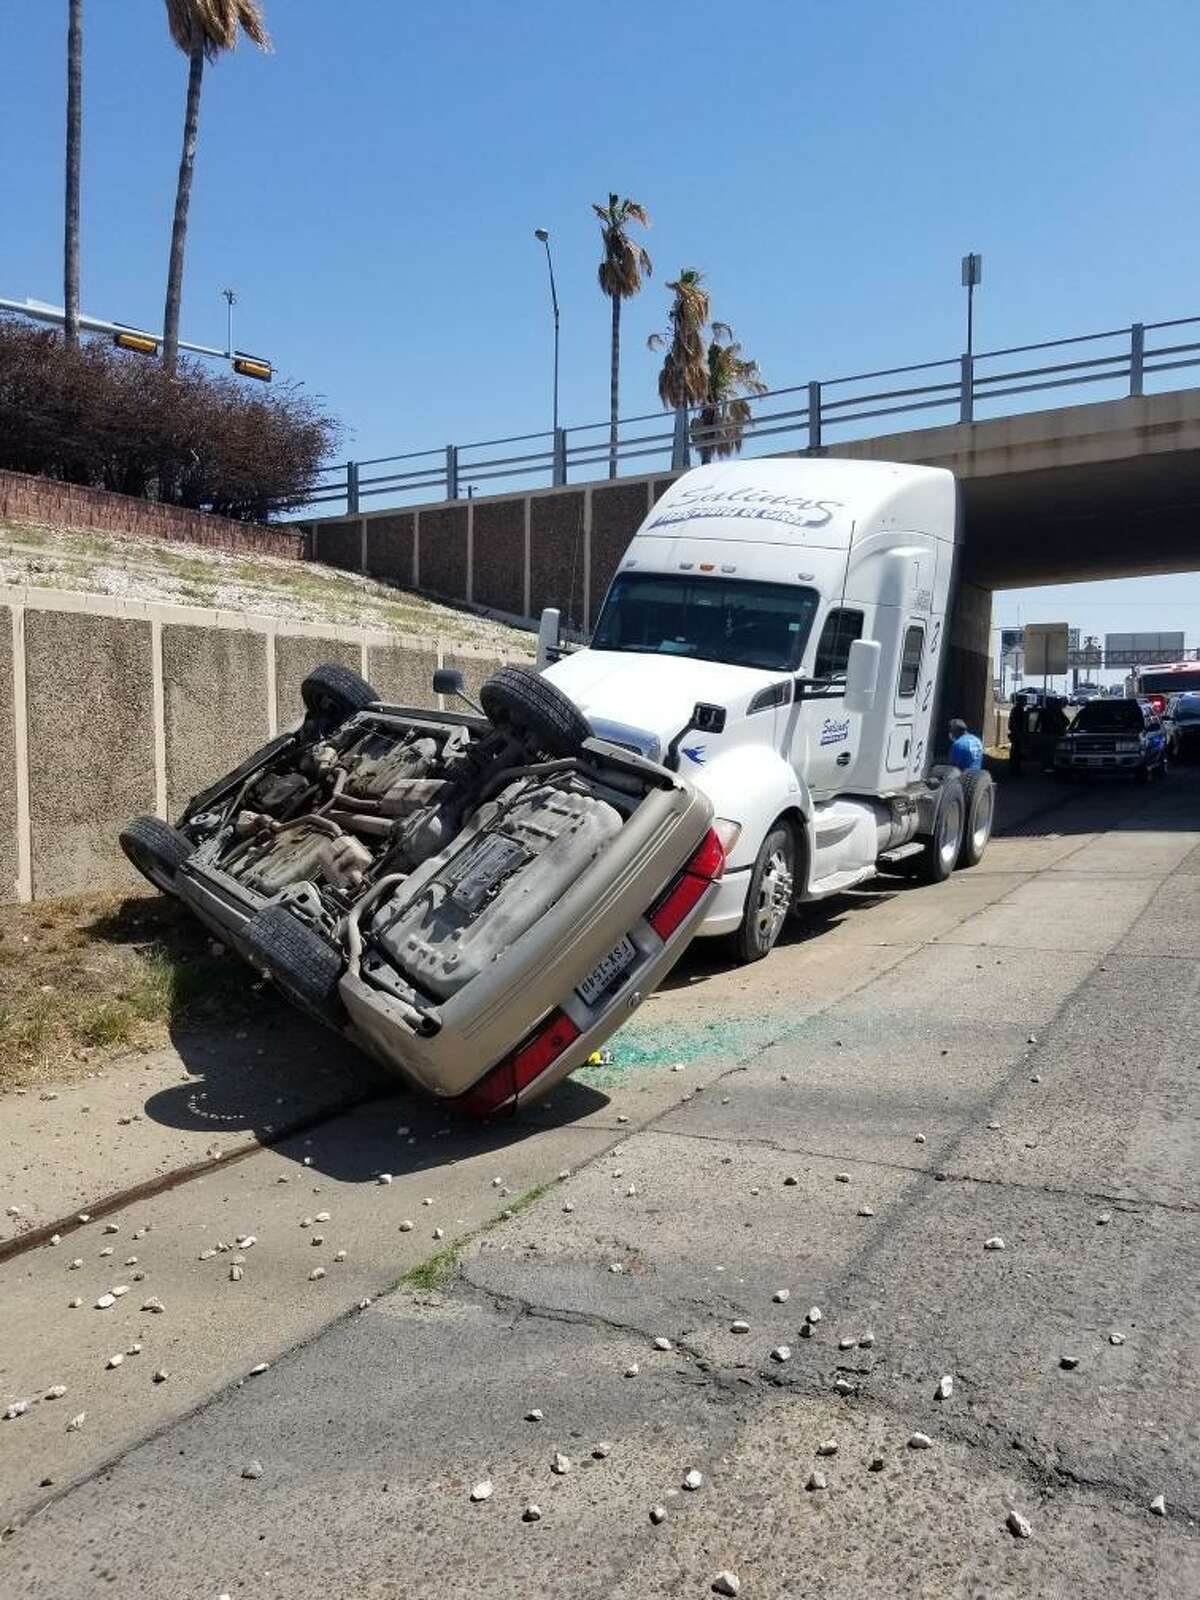 A man was taken to the hospital as a result of this two-vehicle crash on mile marker 1 of Interstate 35.